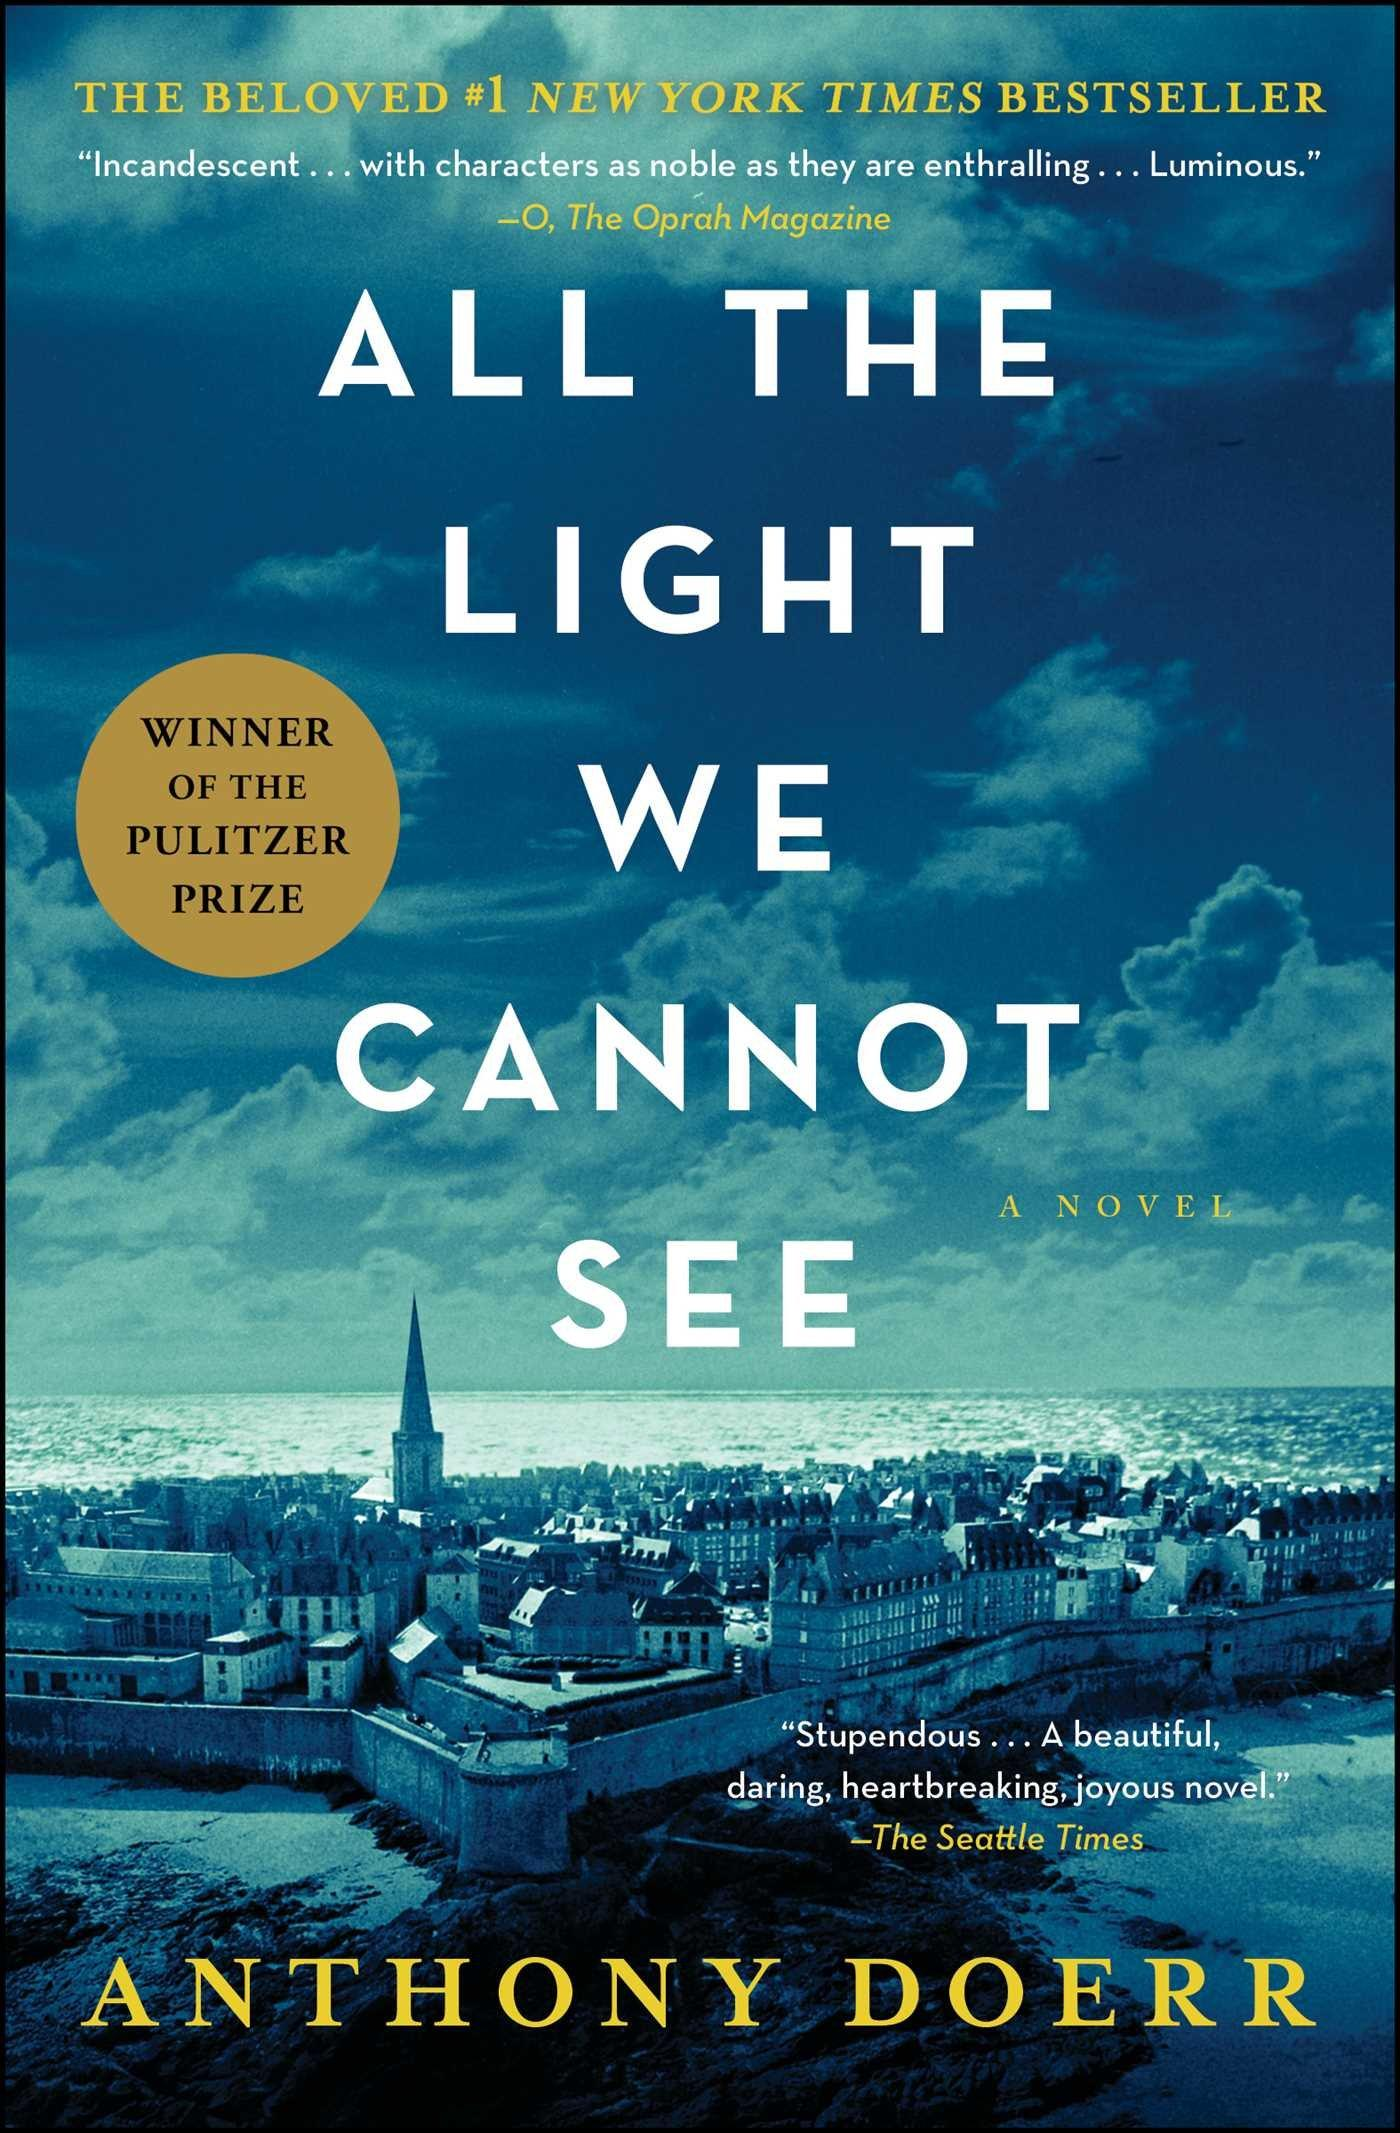 book cover image of All the Light We Cannot See with image over small French town surrounded by water